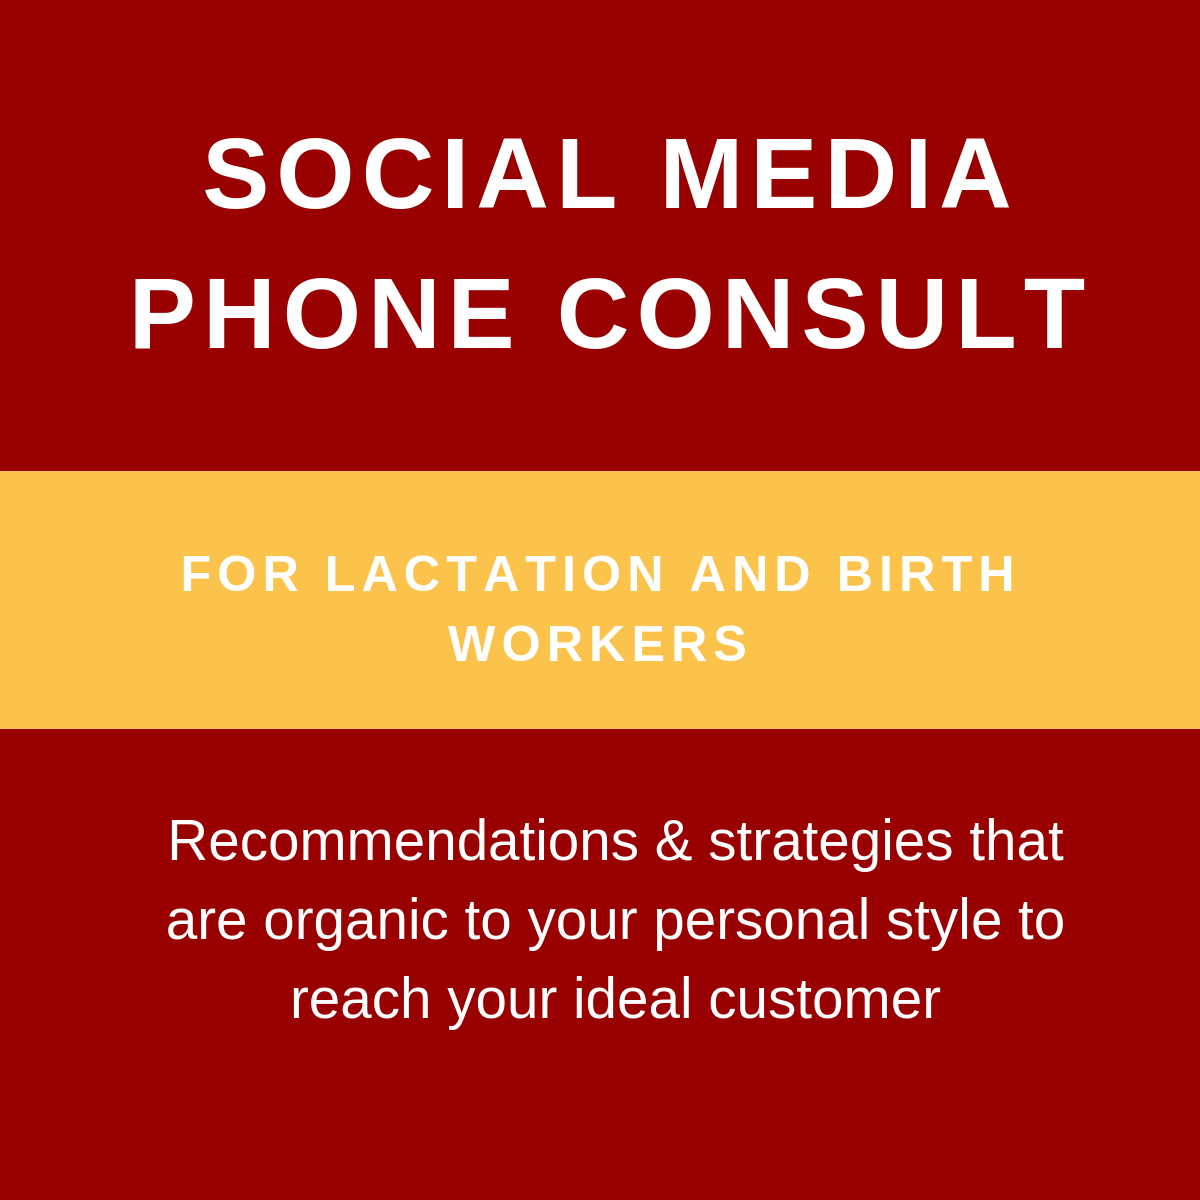 Social Media Phone Consult - In 30 minutes, social media expert Tiara Caldwell LPN IBCLC will answer your questions and provide you with ideas you can implement immediately so that your social media presence is professional, ethical, HIPAA-compliant, and truly expresses who you are.